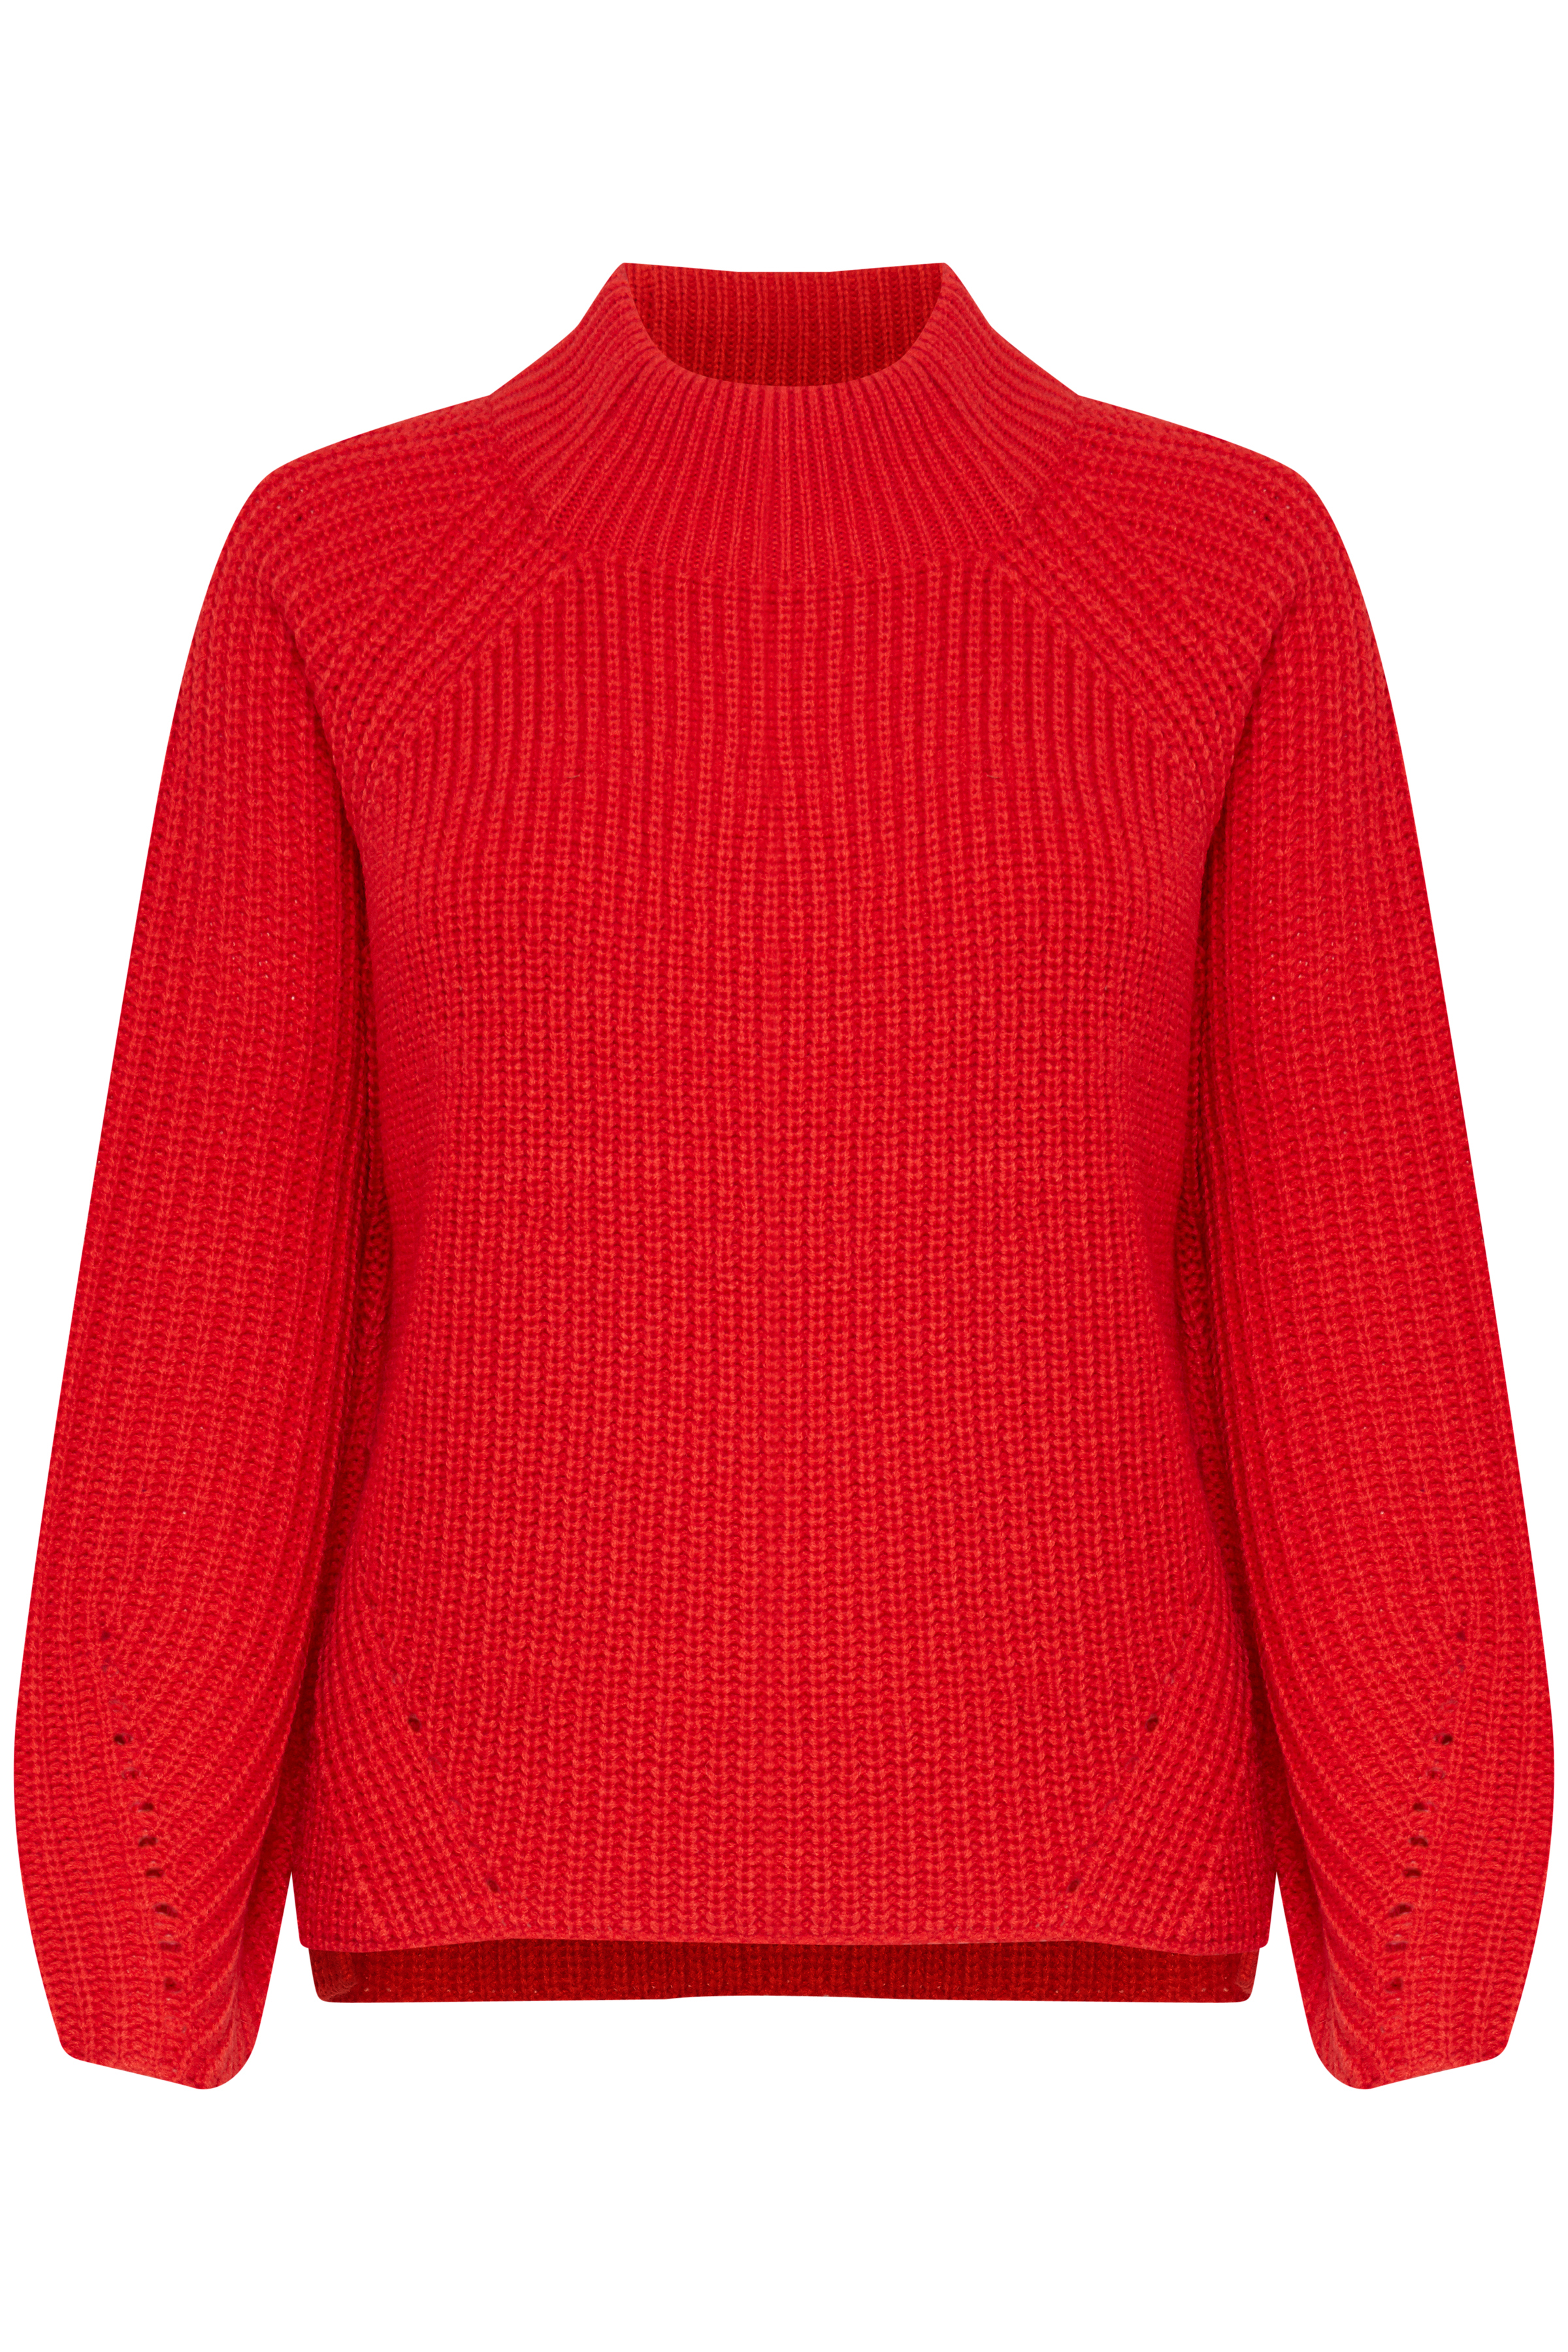 Tomato Red Knitted pullover from b.young – Buy Tomato Red Knitted pullover from size XS-XXL here